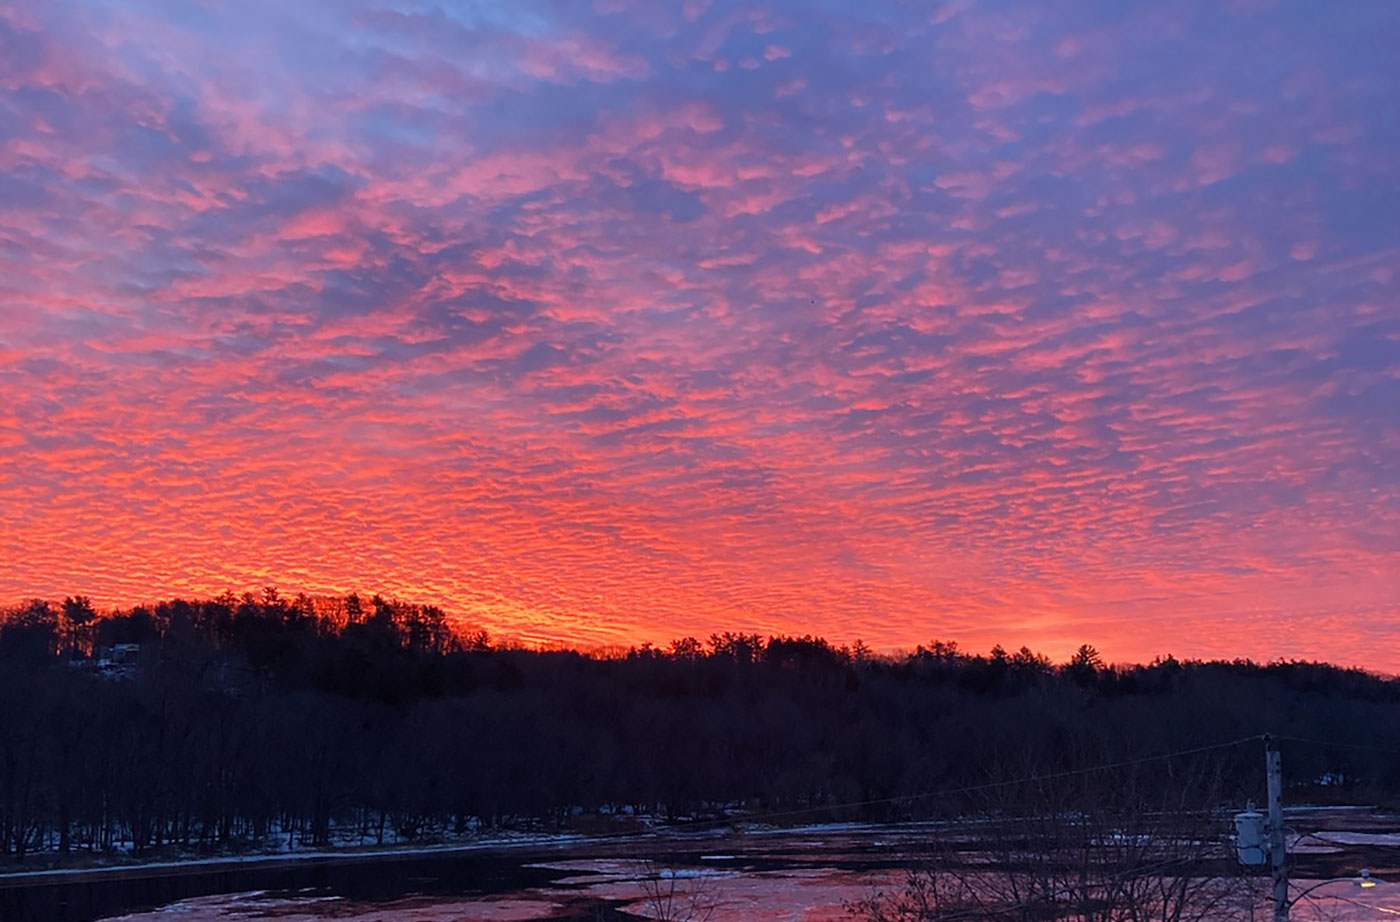 Sunrise over Kennebec River in Hallowell